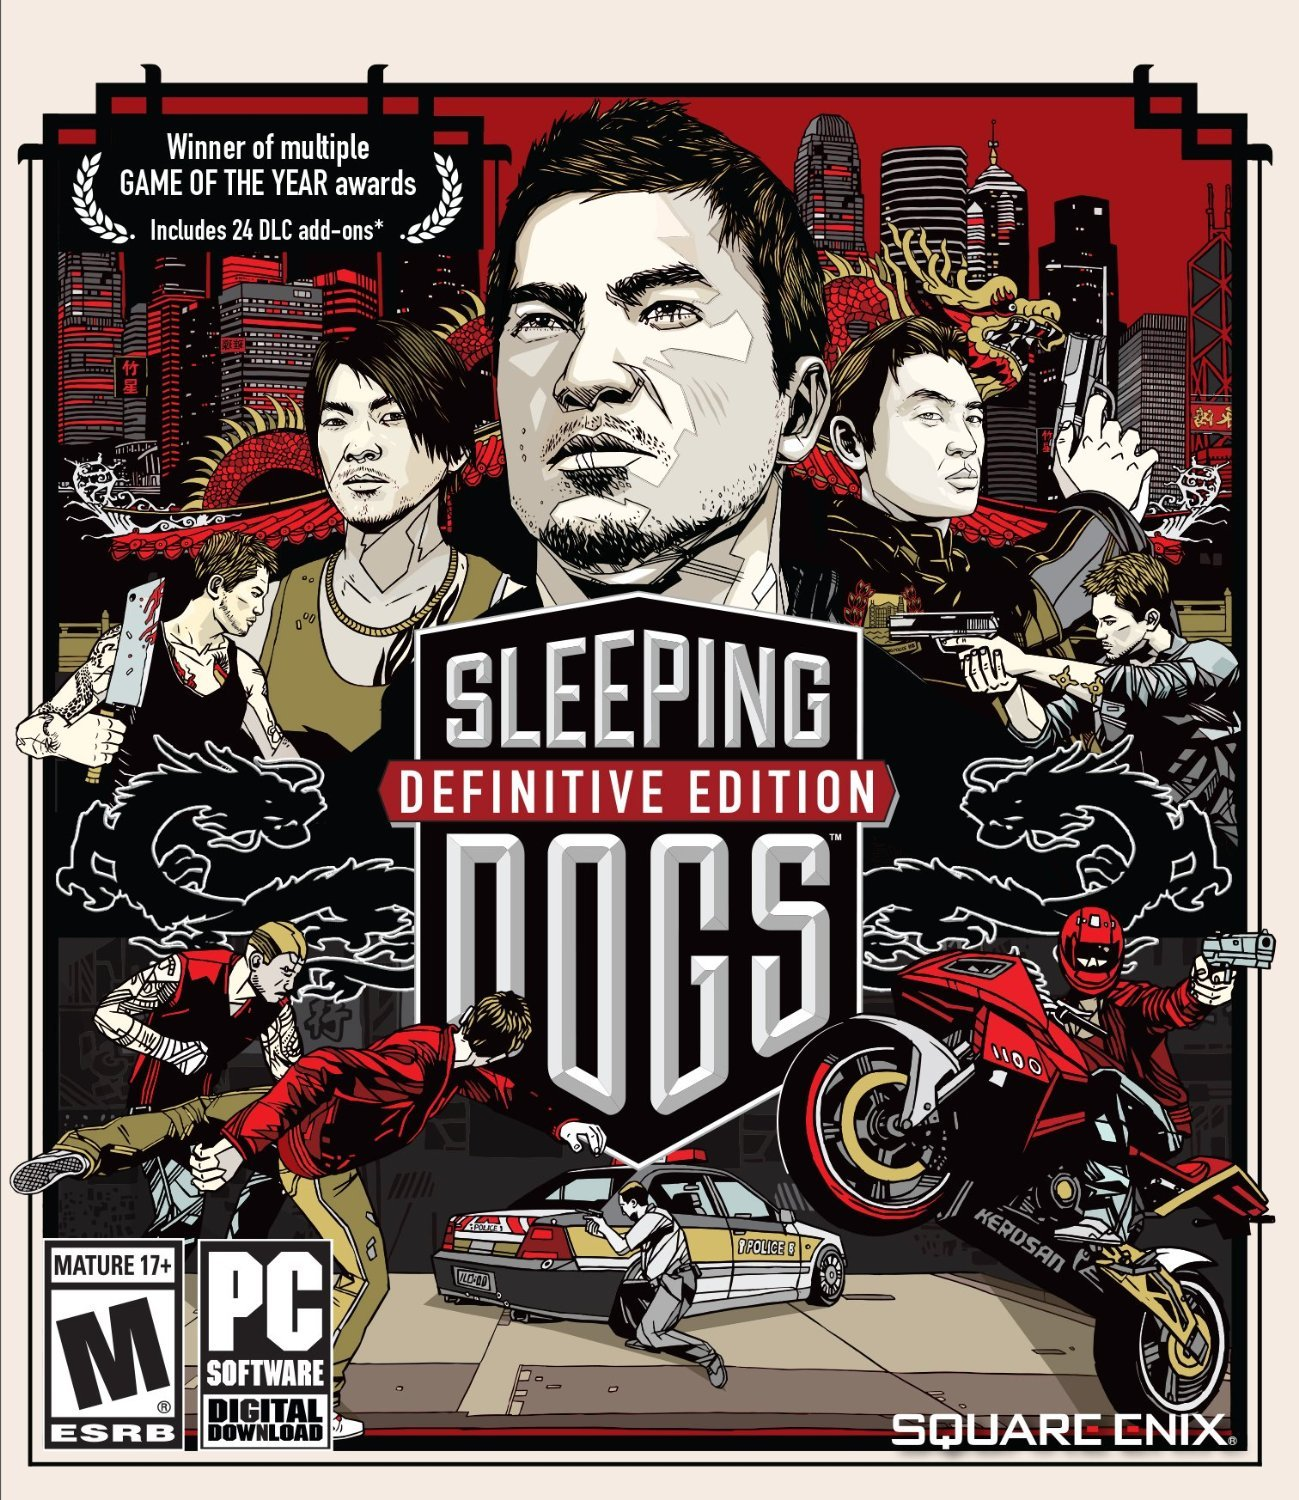 Sleeping Dogs: Definitive Edition Windows PC Game Download Steam CD-Key Global